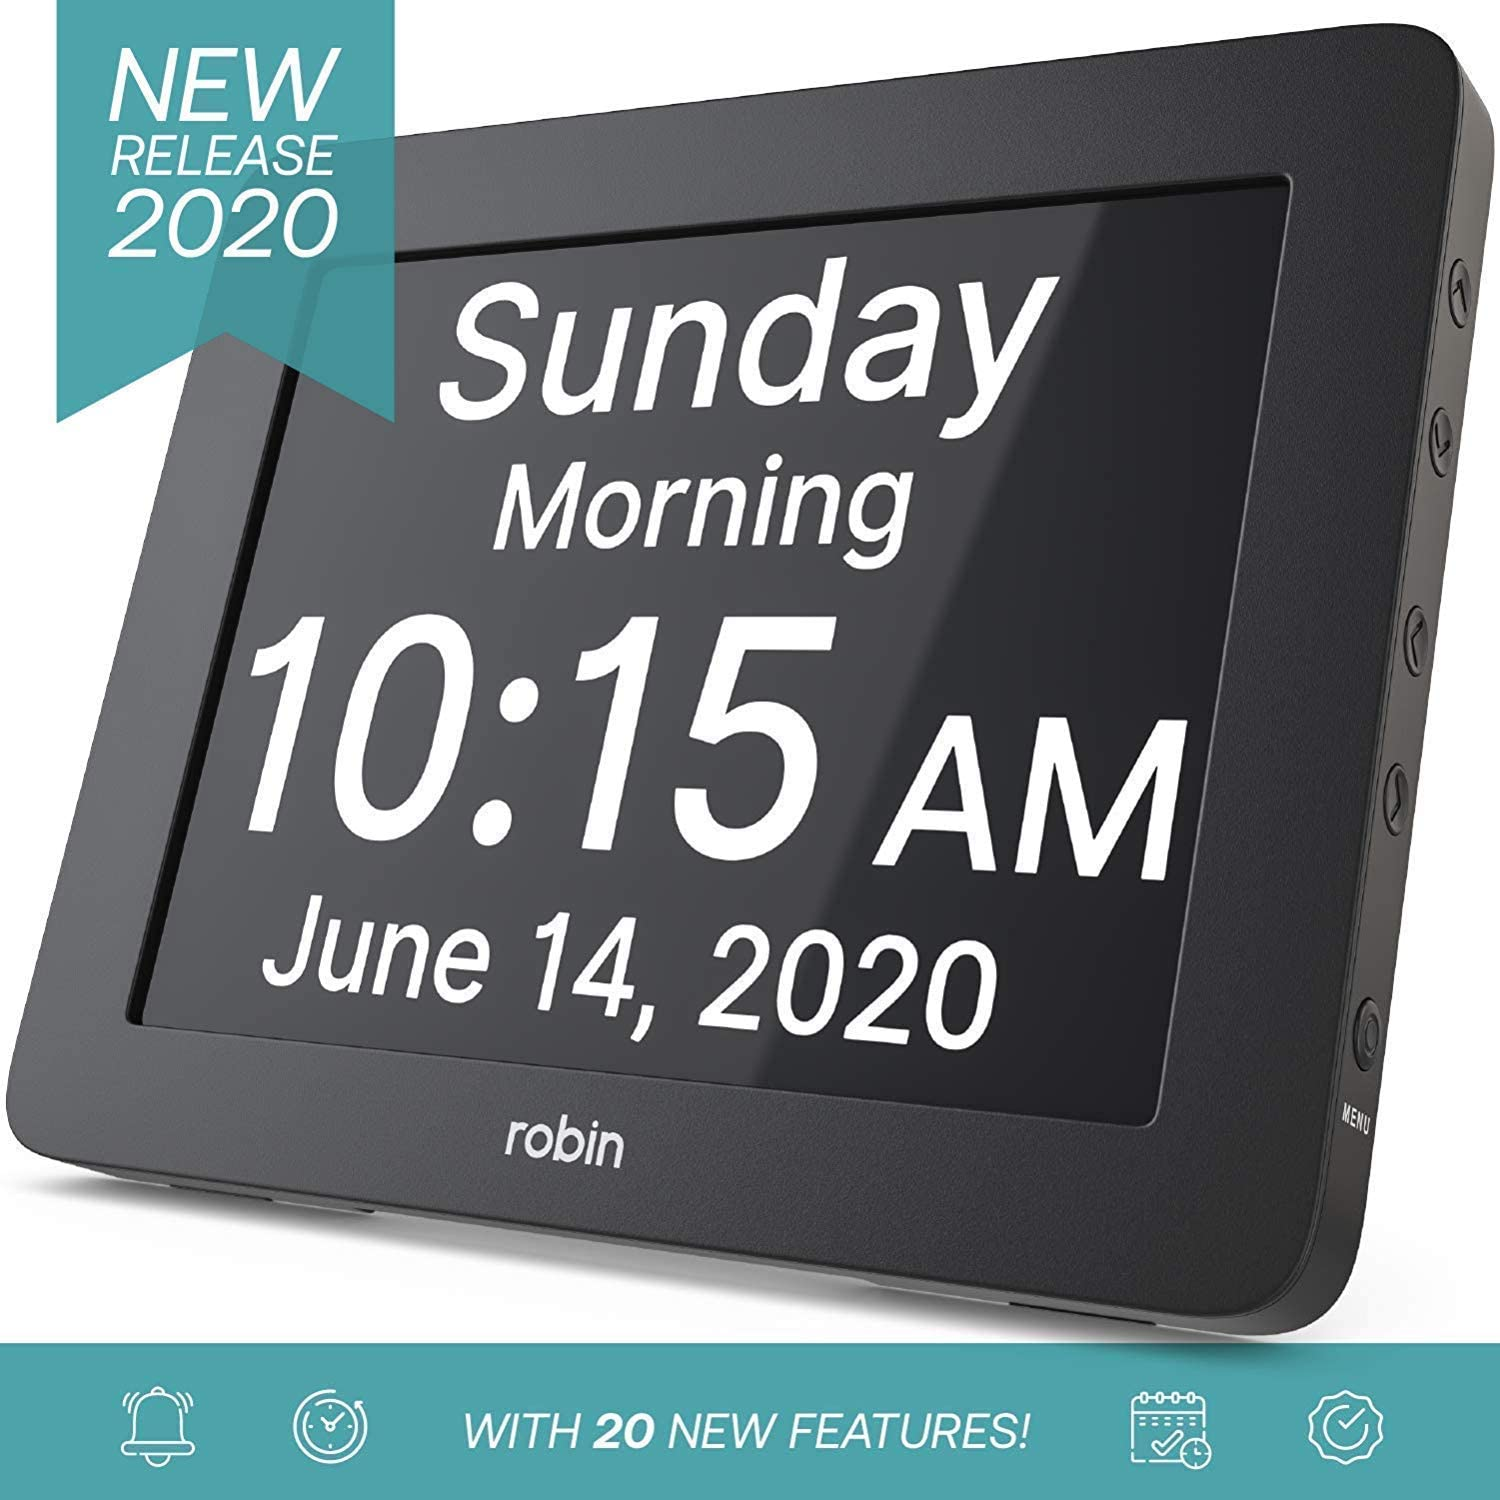 Robin, 2020 Version, Digital Day Clock 2.0 with Custom Alarms and Calendar Reminders, Alarm Clock with Extra Large Display Helps with Memory Loss, Alzheimer's and Dementia, Black